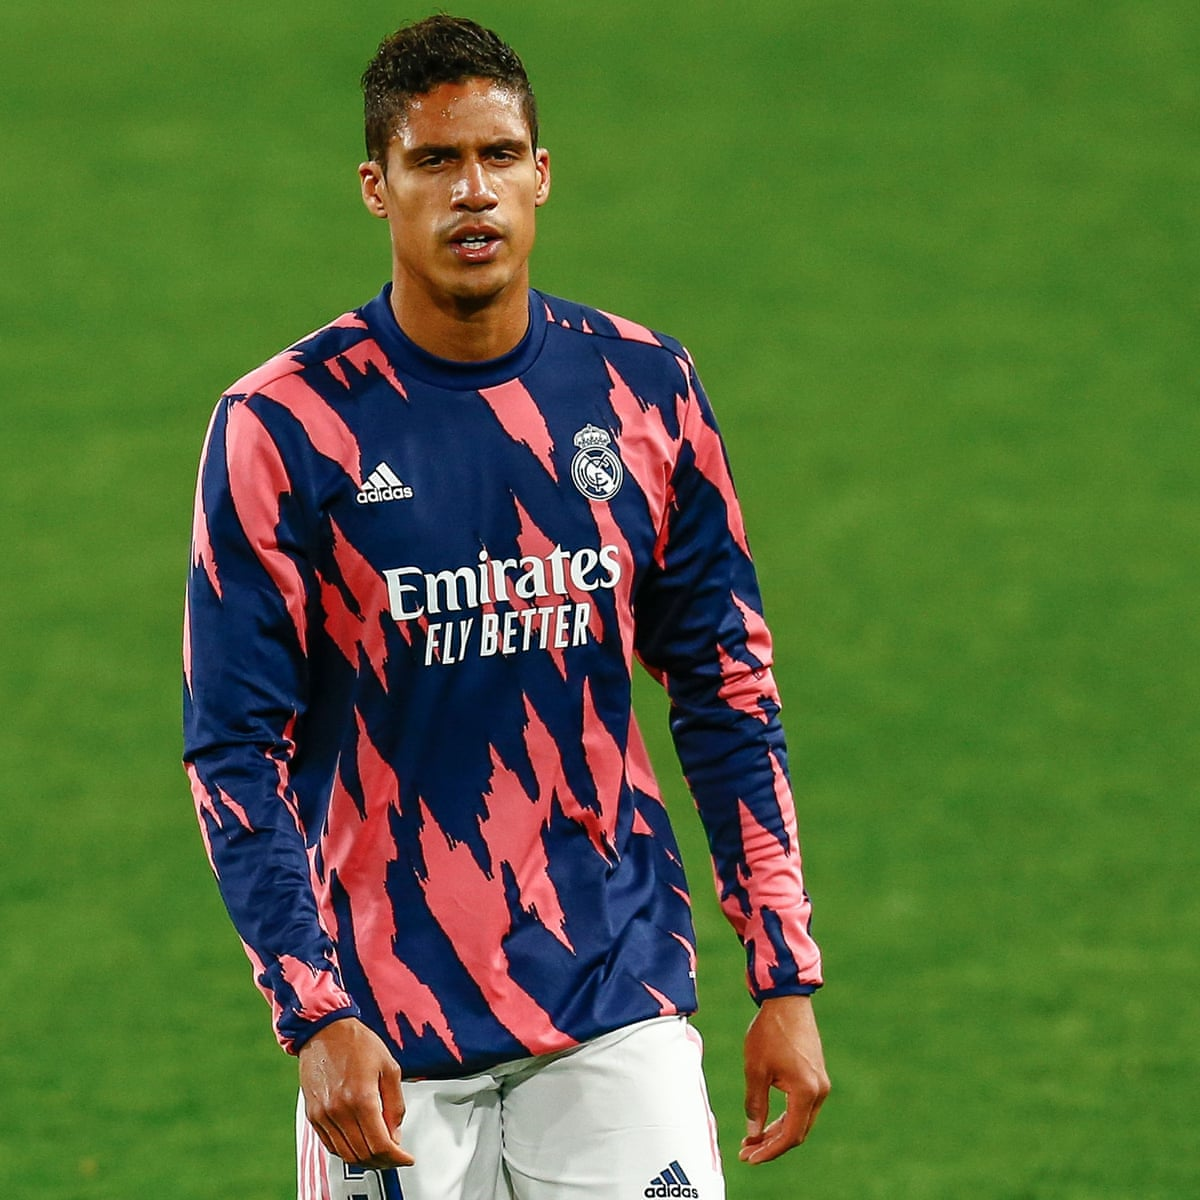 Manchester United ready to make bid for Real Madrid's Raphaël Varane | Manchester United | The Guardian